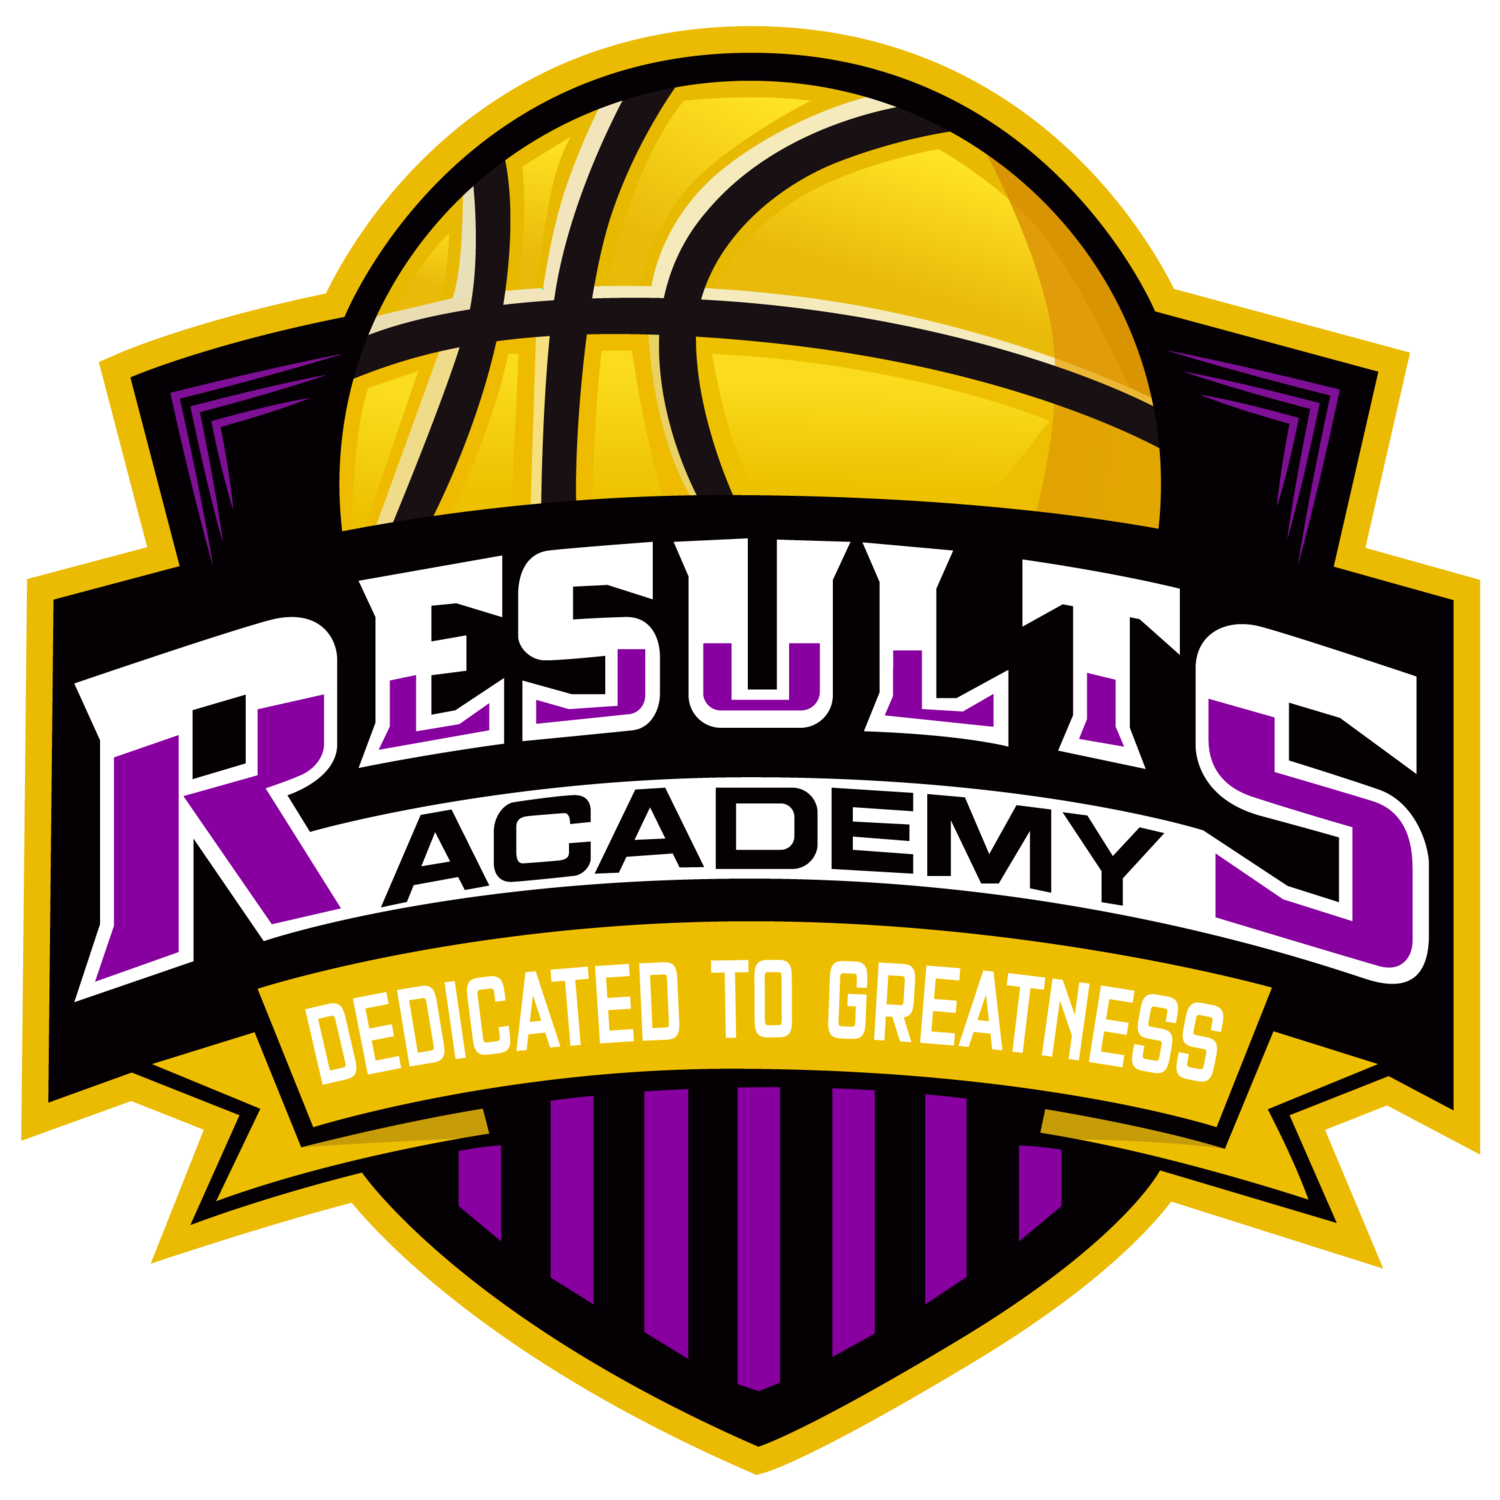 Results Academy